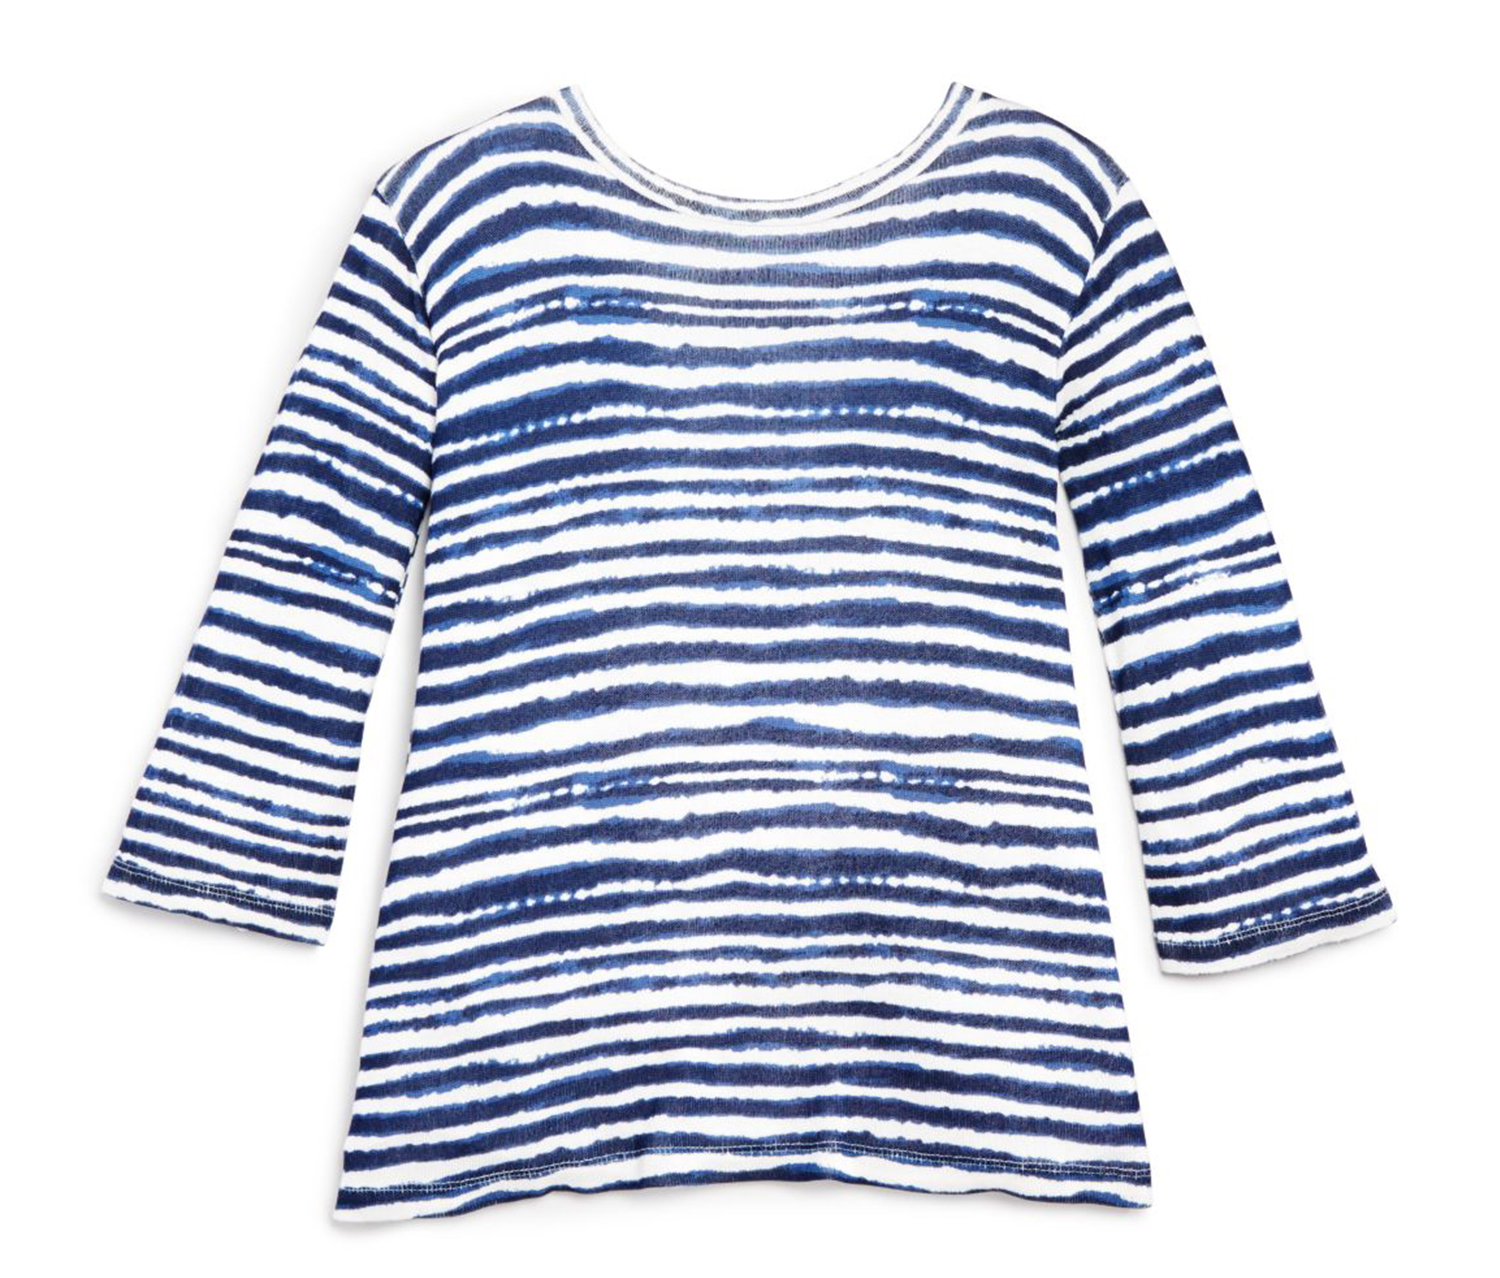 Splendid Girls' Tie Dye Striped Tee, Navy/White